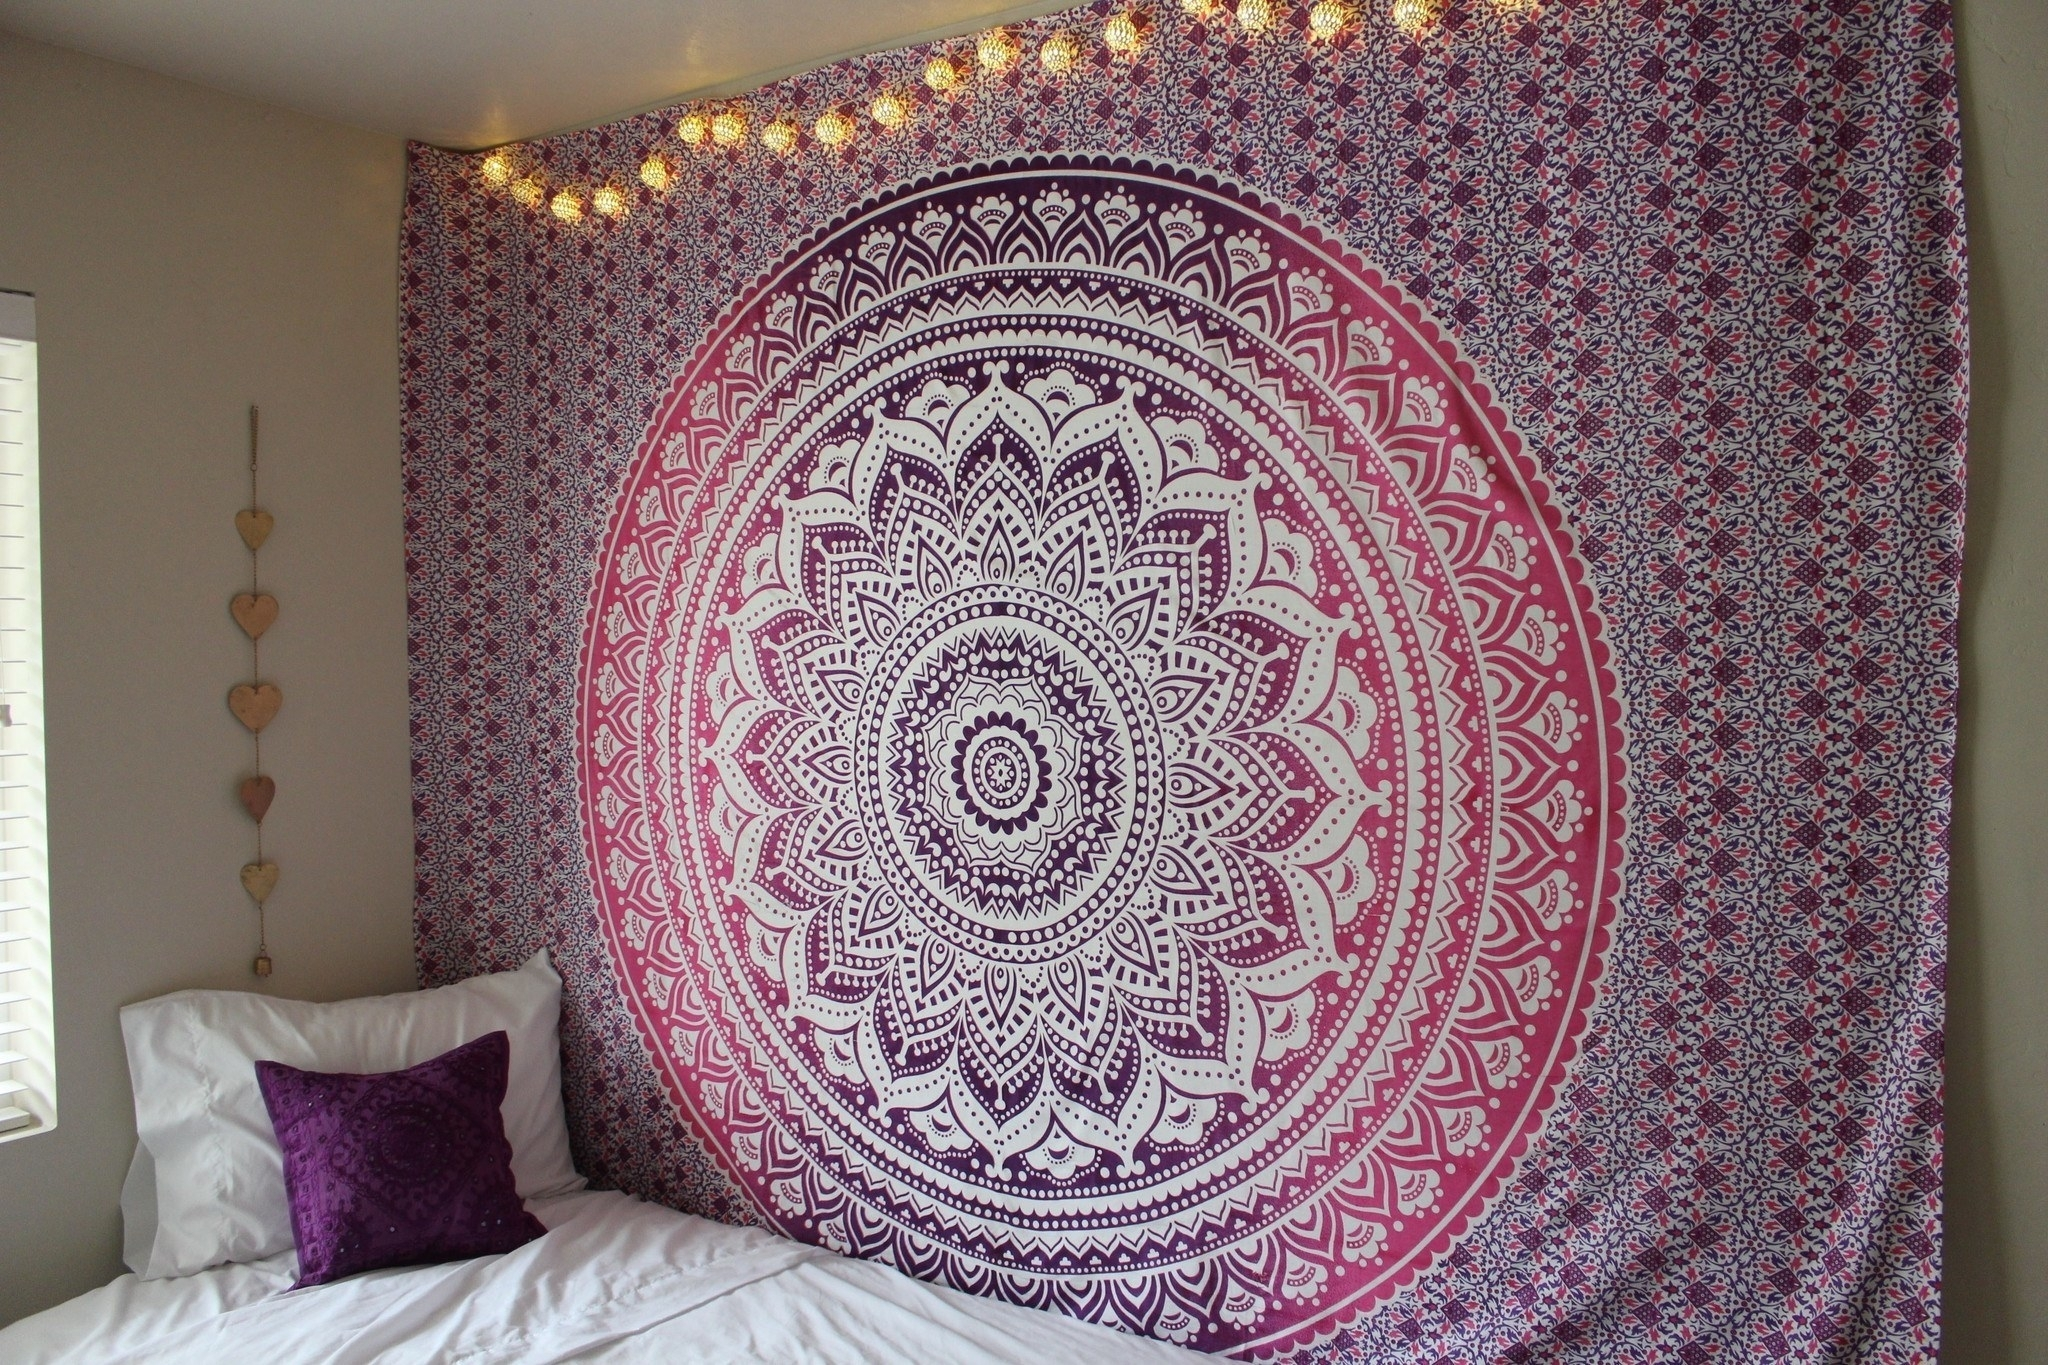 Purple Ombre Mandala Cotton Wall Tapestry Bedding – Royalfurnish With Best And Newest Indian Fabric Art Wall Hangings (View 8 of 15)